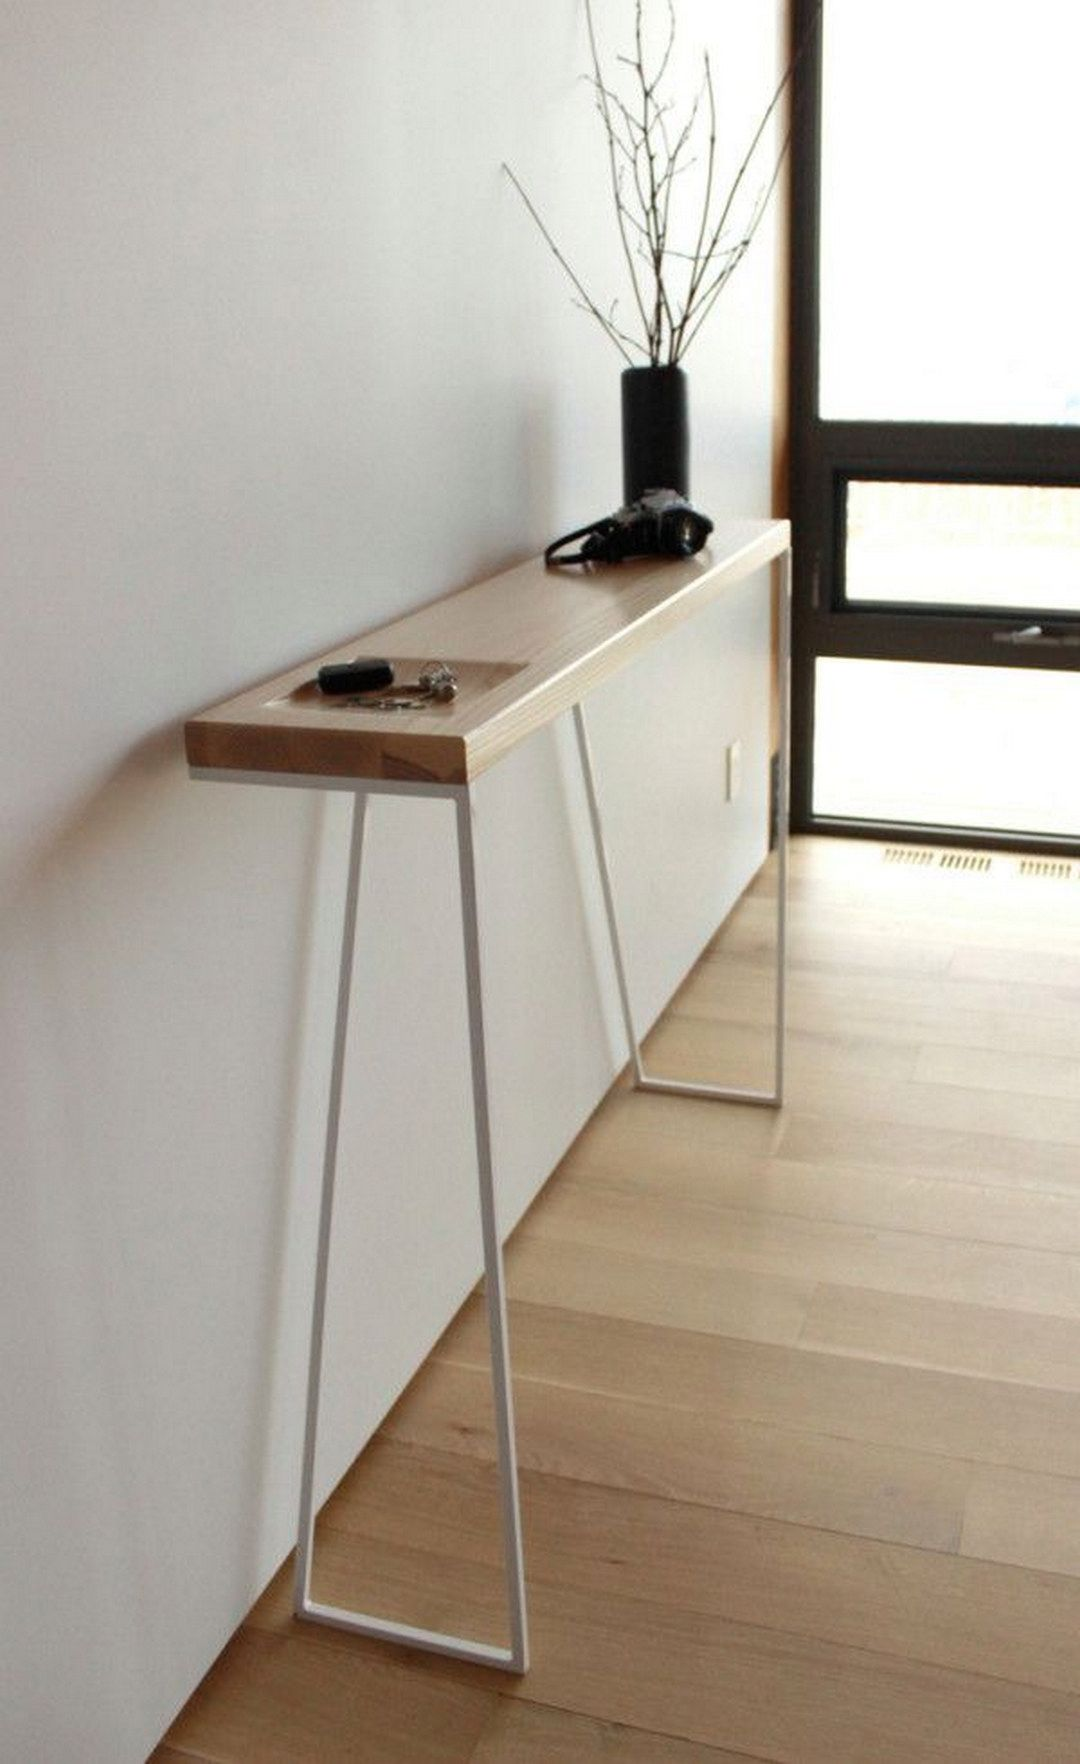 100 gorgeous minimalist furniture design ideas https www futuristarchitecture com